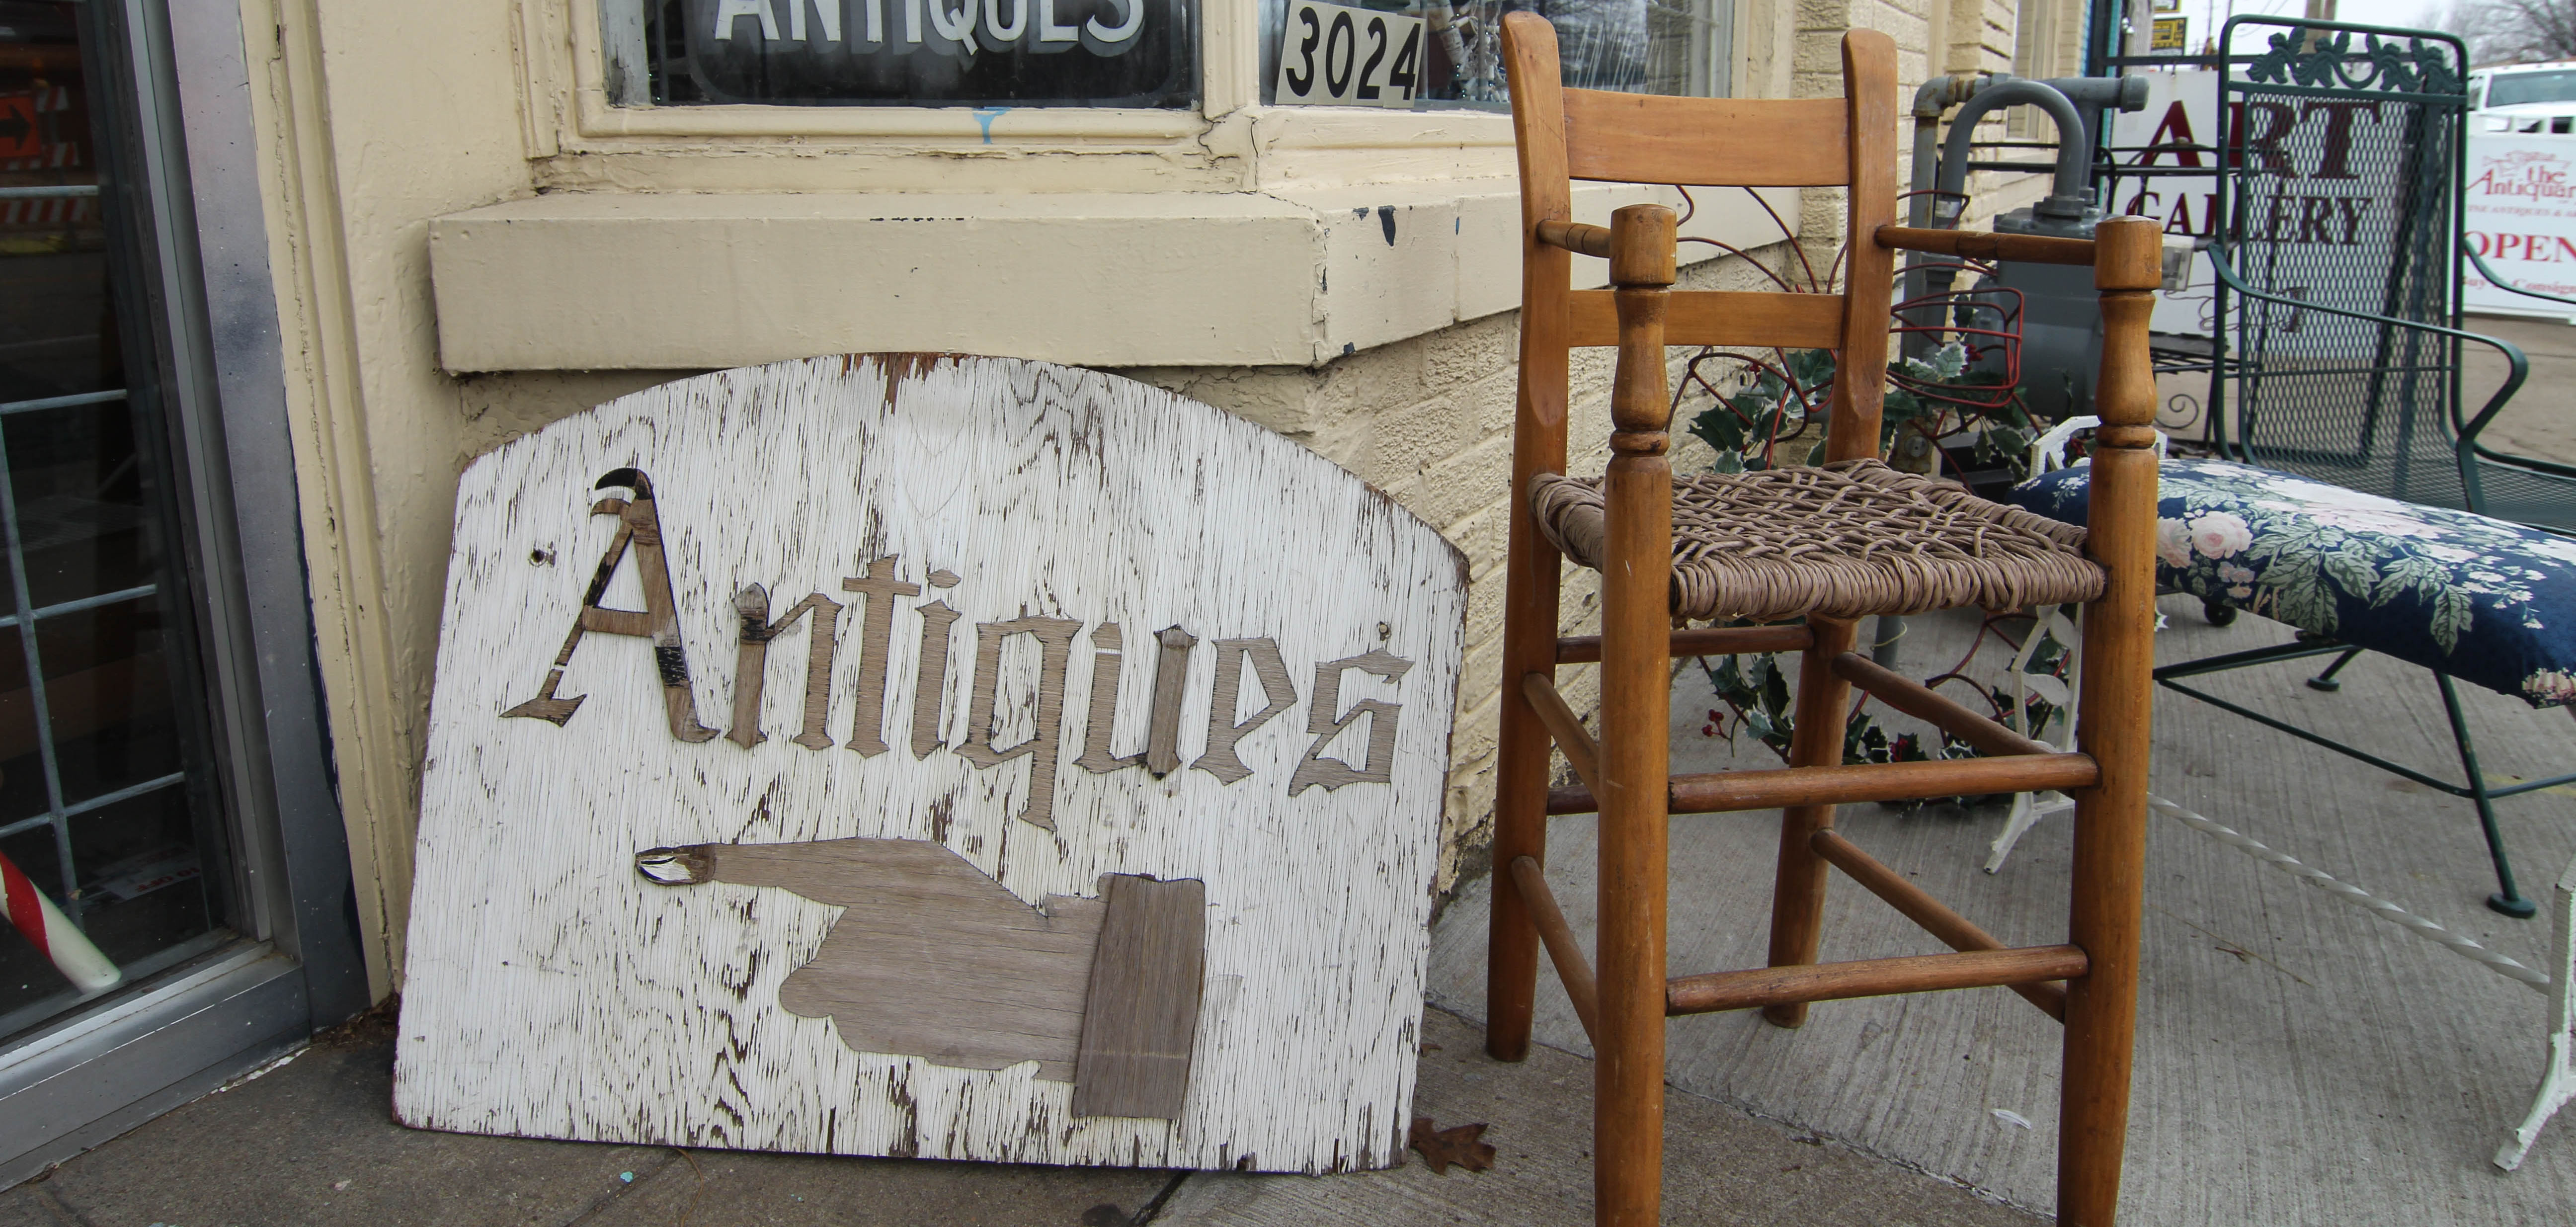 An antique sign outside of The Antiquary in Tulsa, Oklahoma.